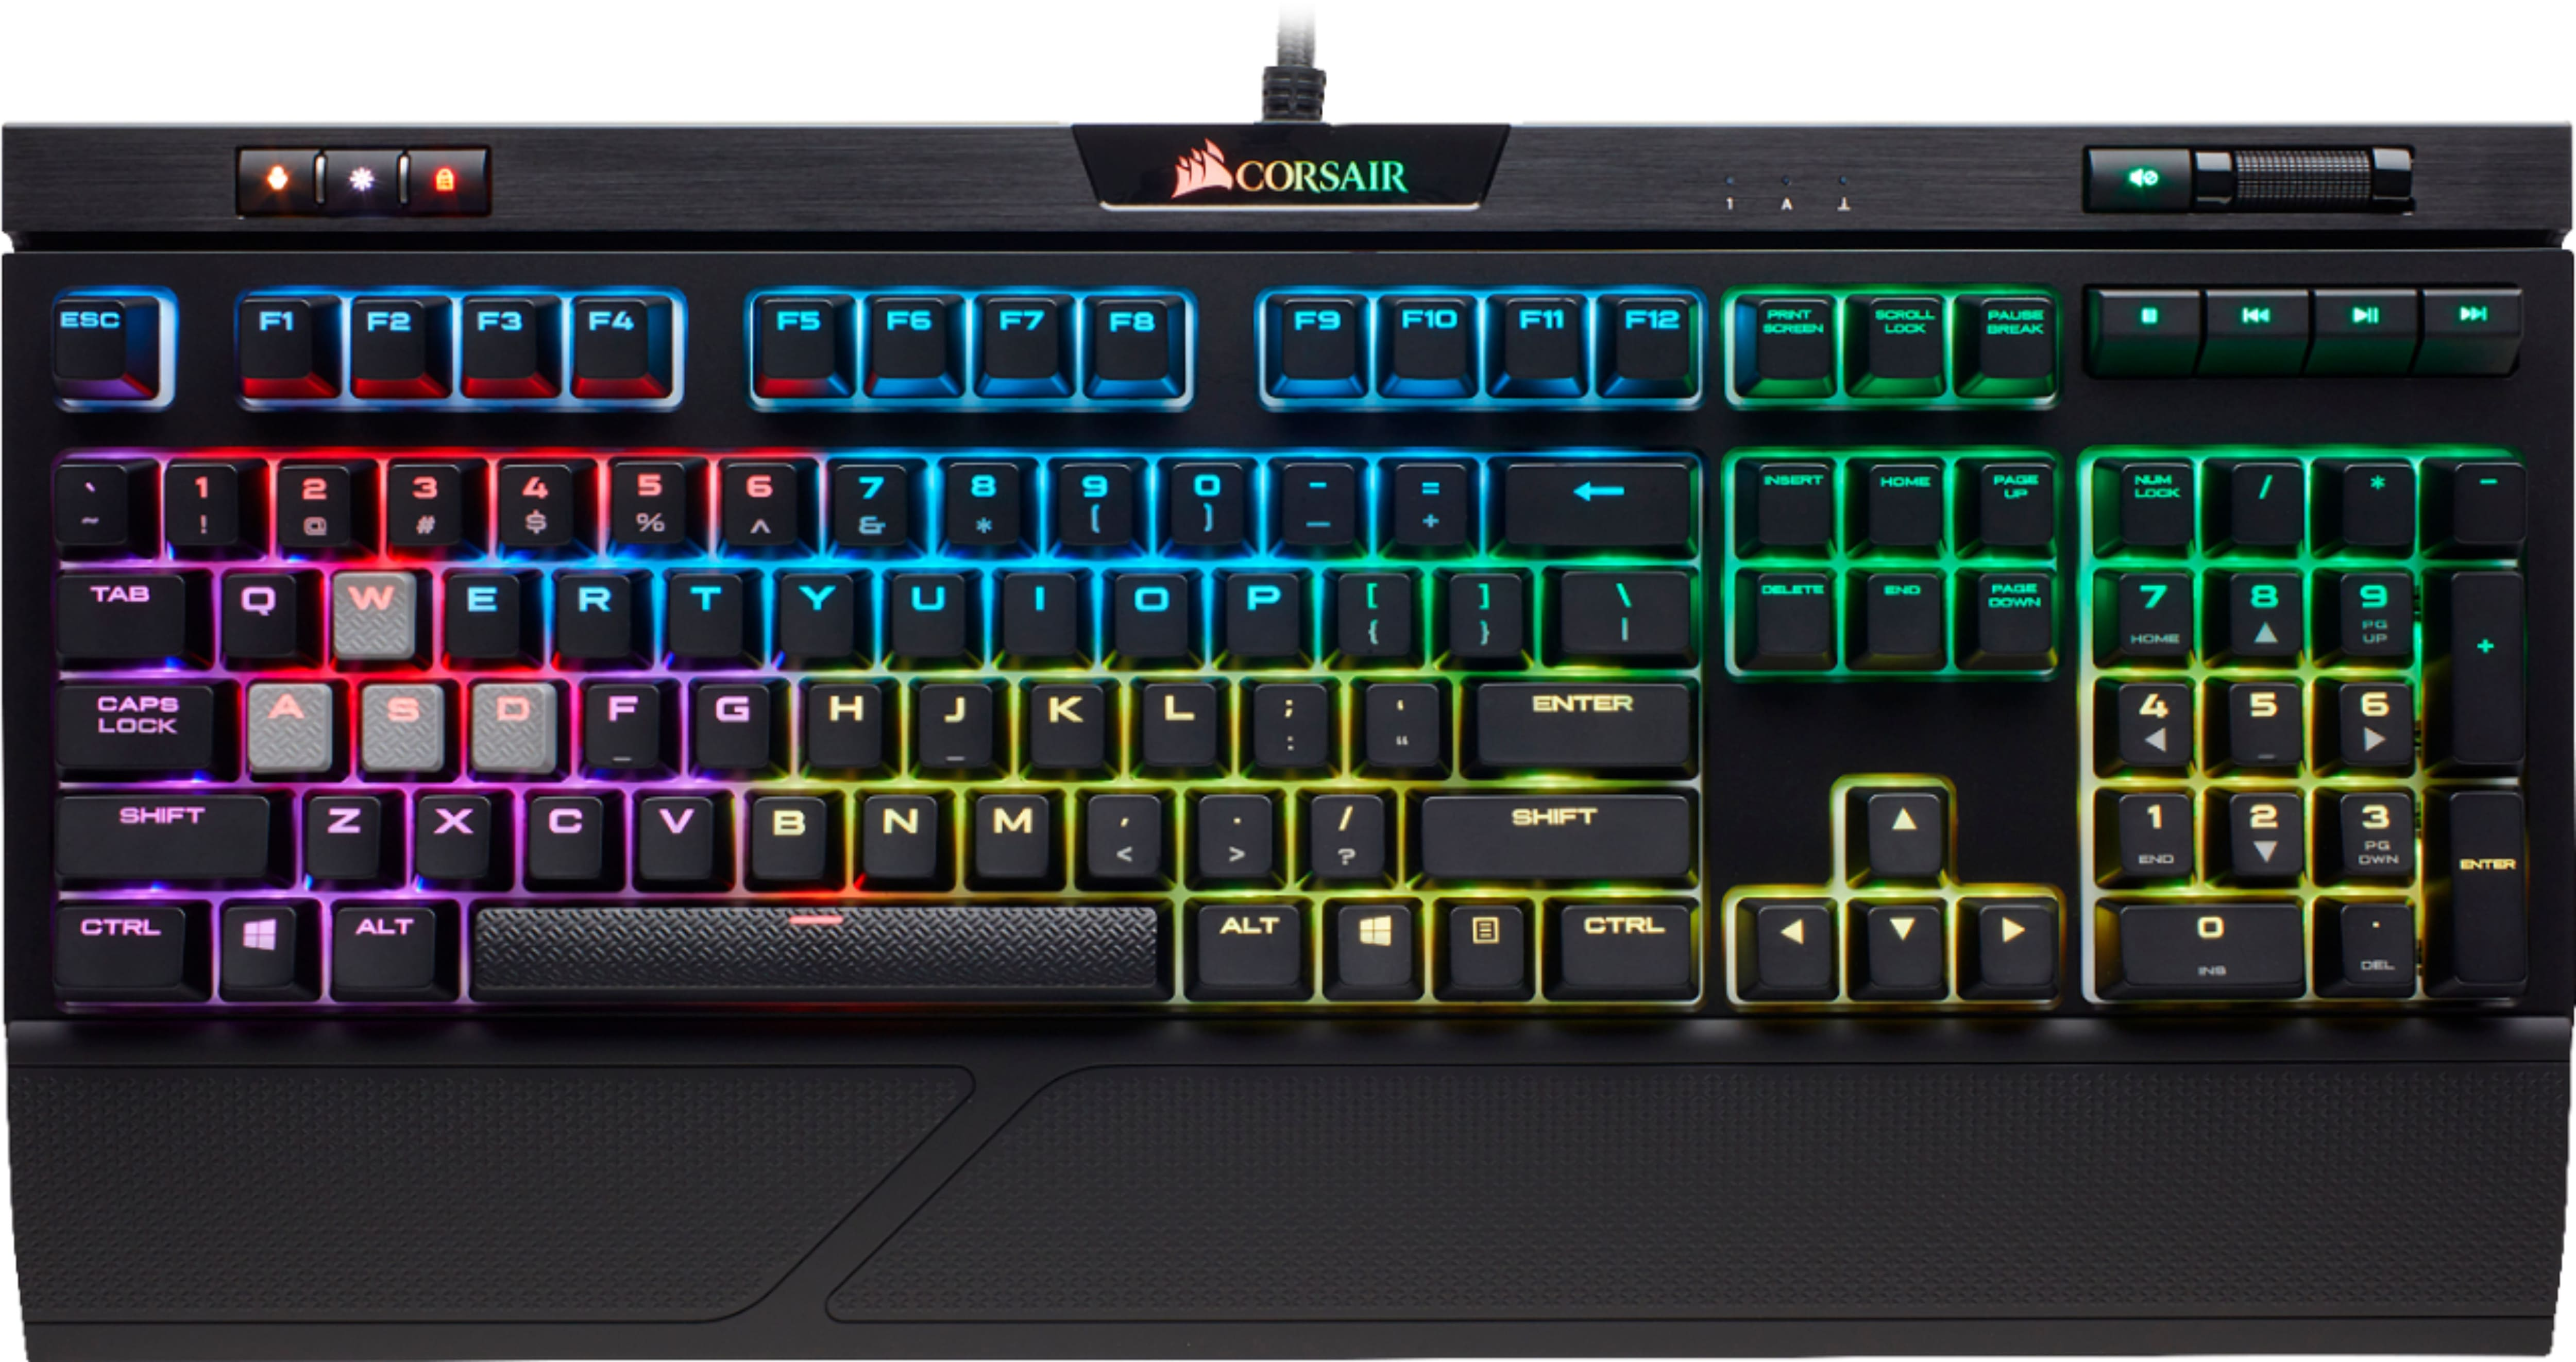 CORSAIR - Gaming STRAFE RGB MK.2 MX Silent Mechanical Wired CHERRY MX Silent RGB Switch Keyboard with RGB Back Lighting - Black $89.99